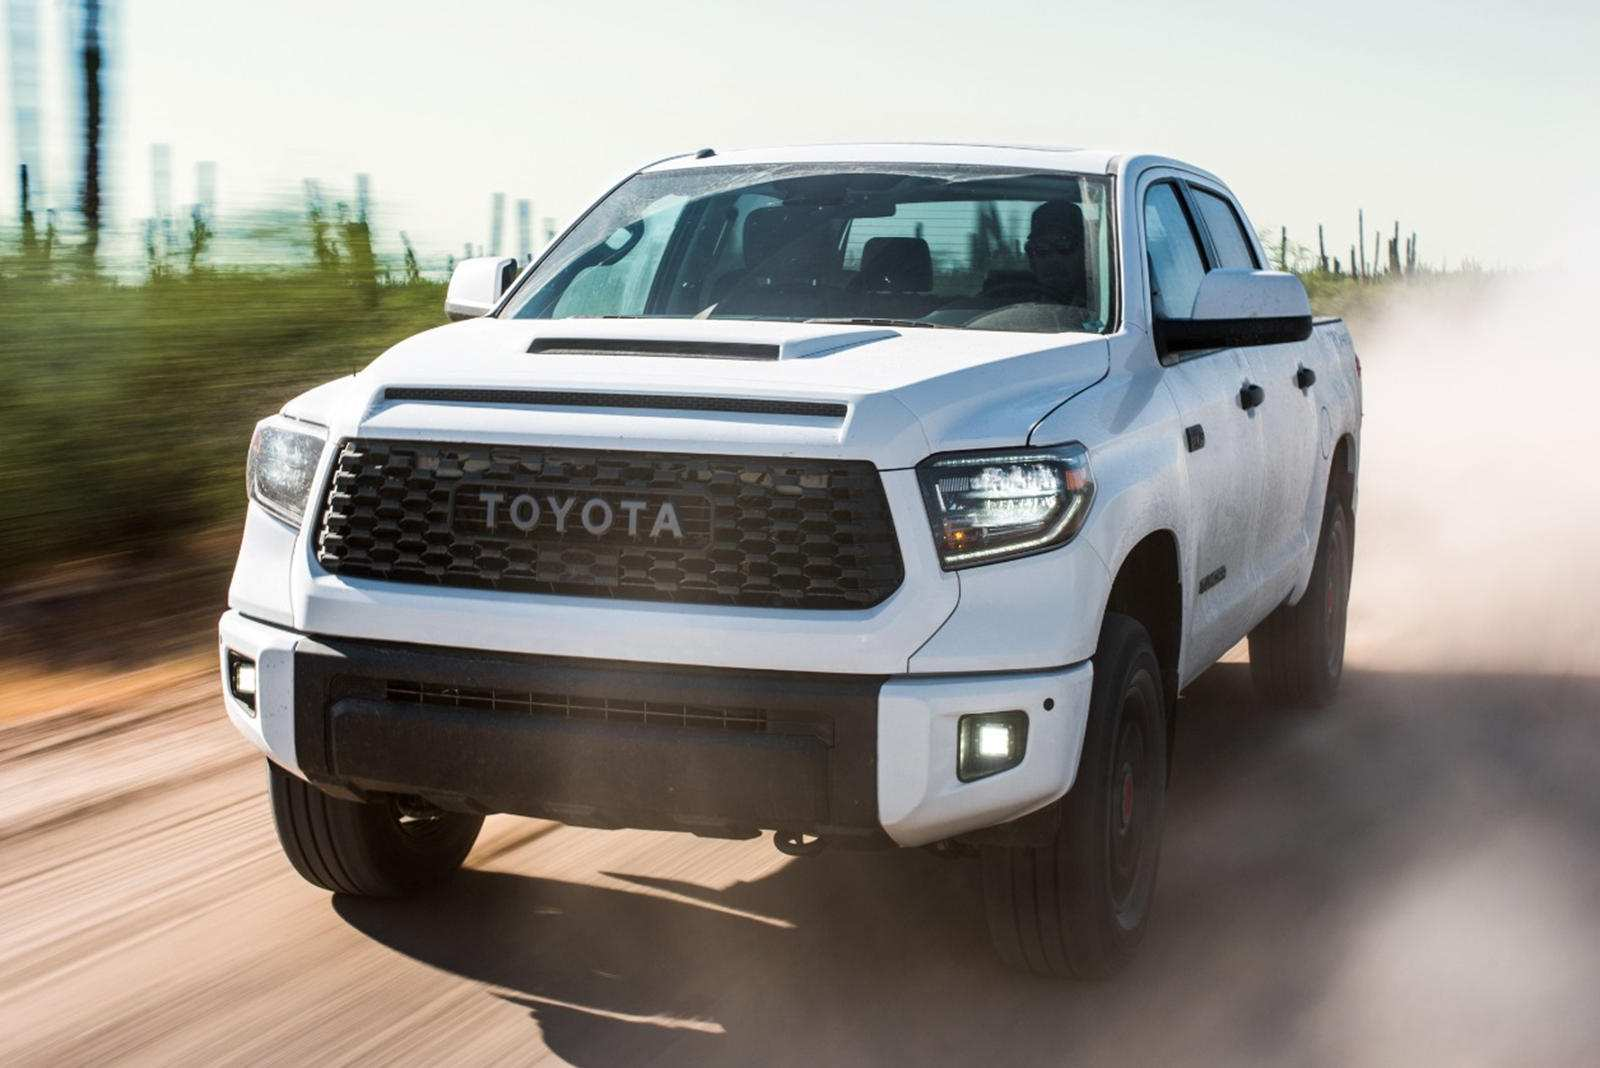 45 Best Review New 2019 Toyota Tundra Release Date Price And Review Exterior and Interior for New 2019 Toyota Tundra Release Date Price And Review